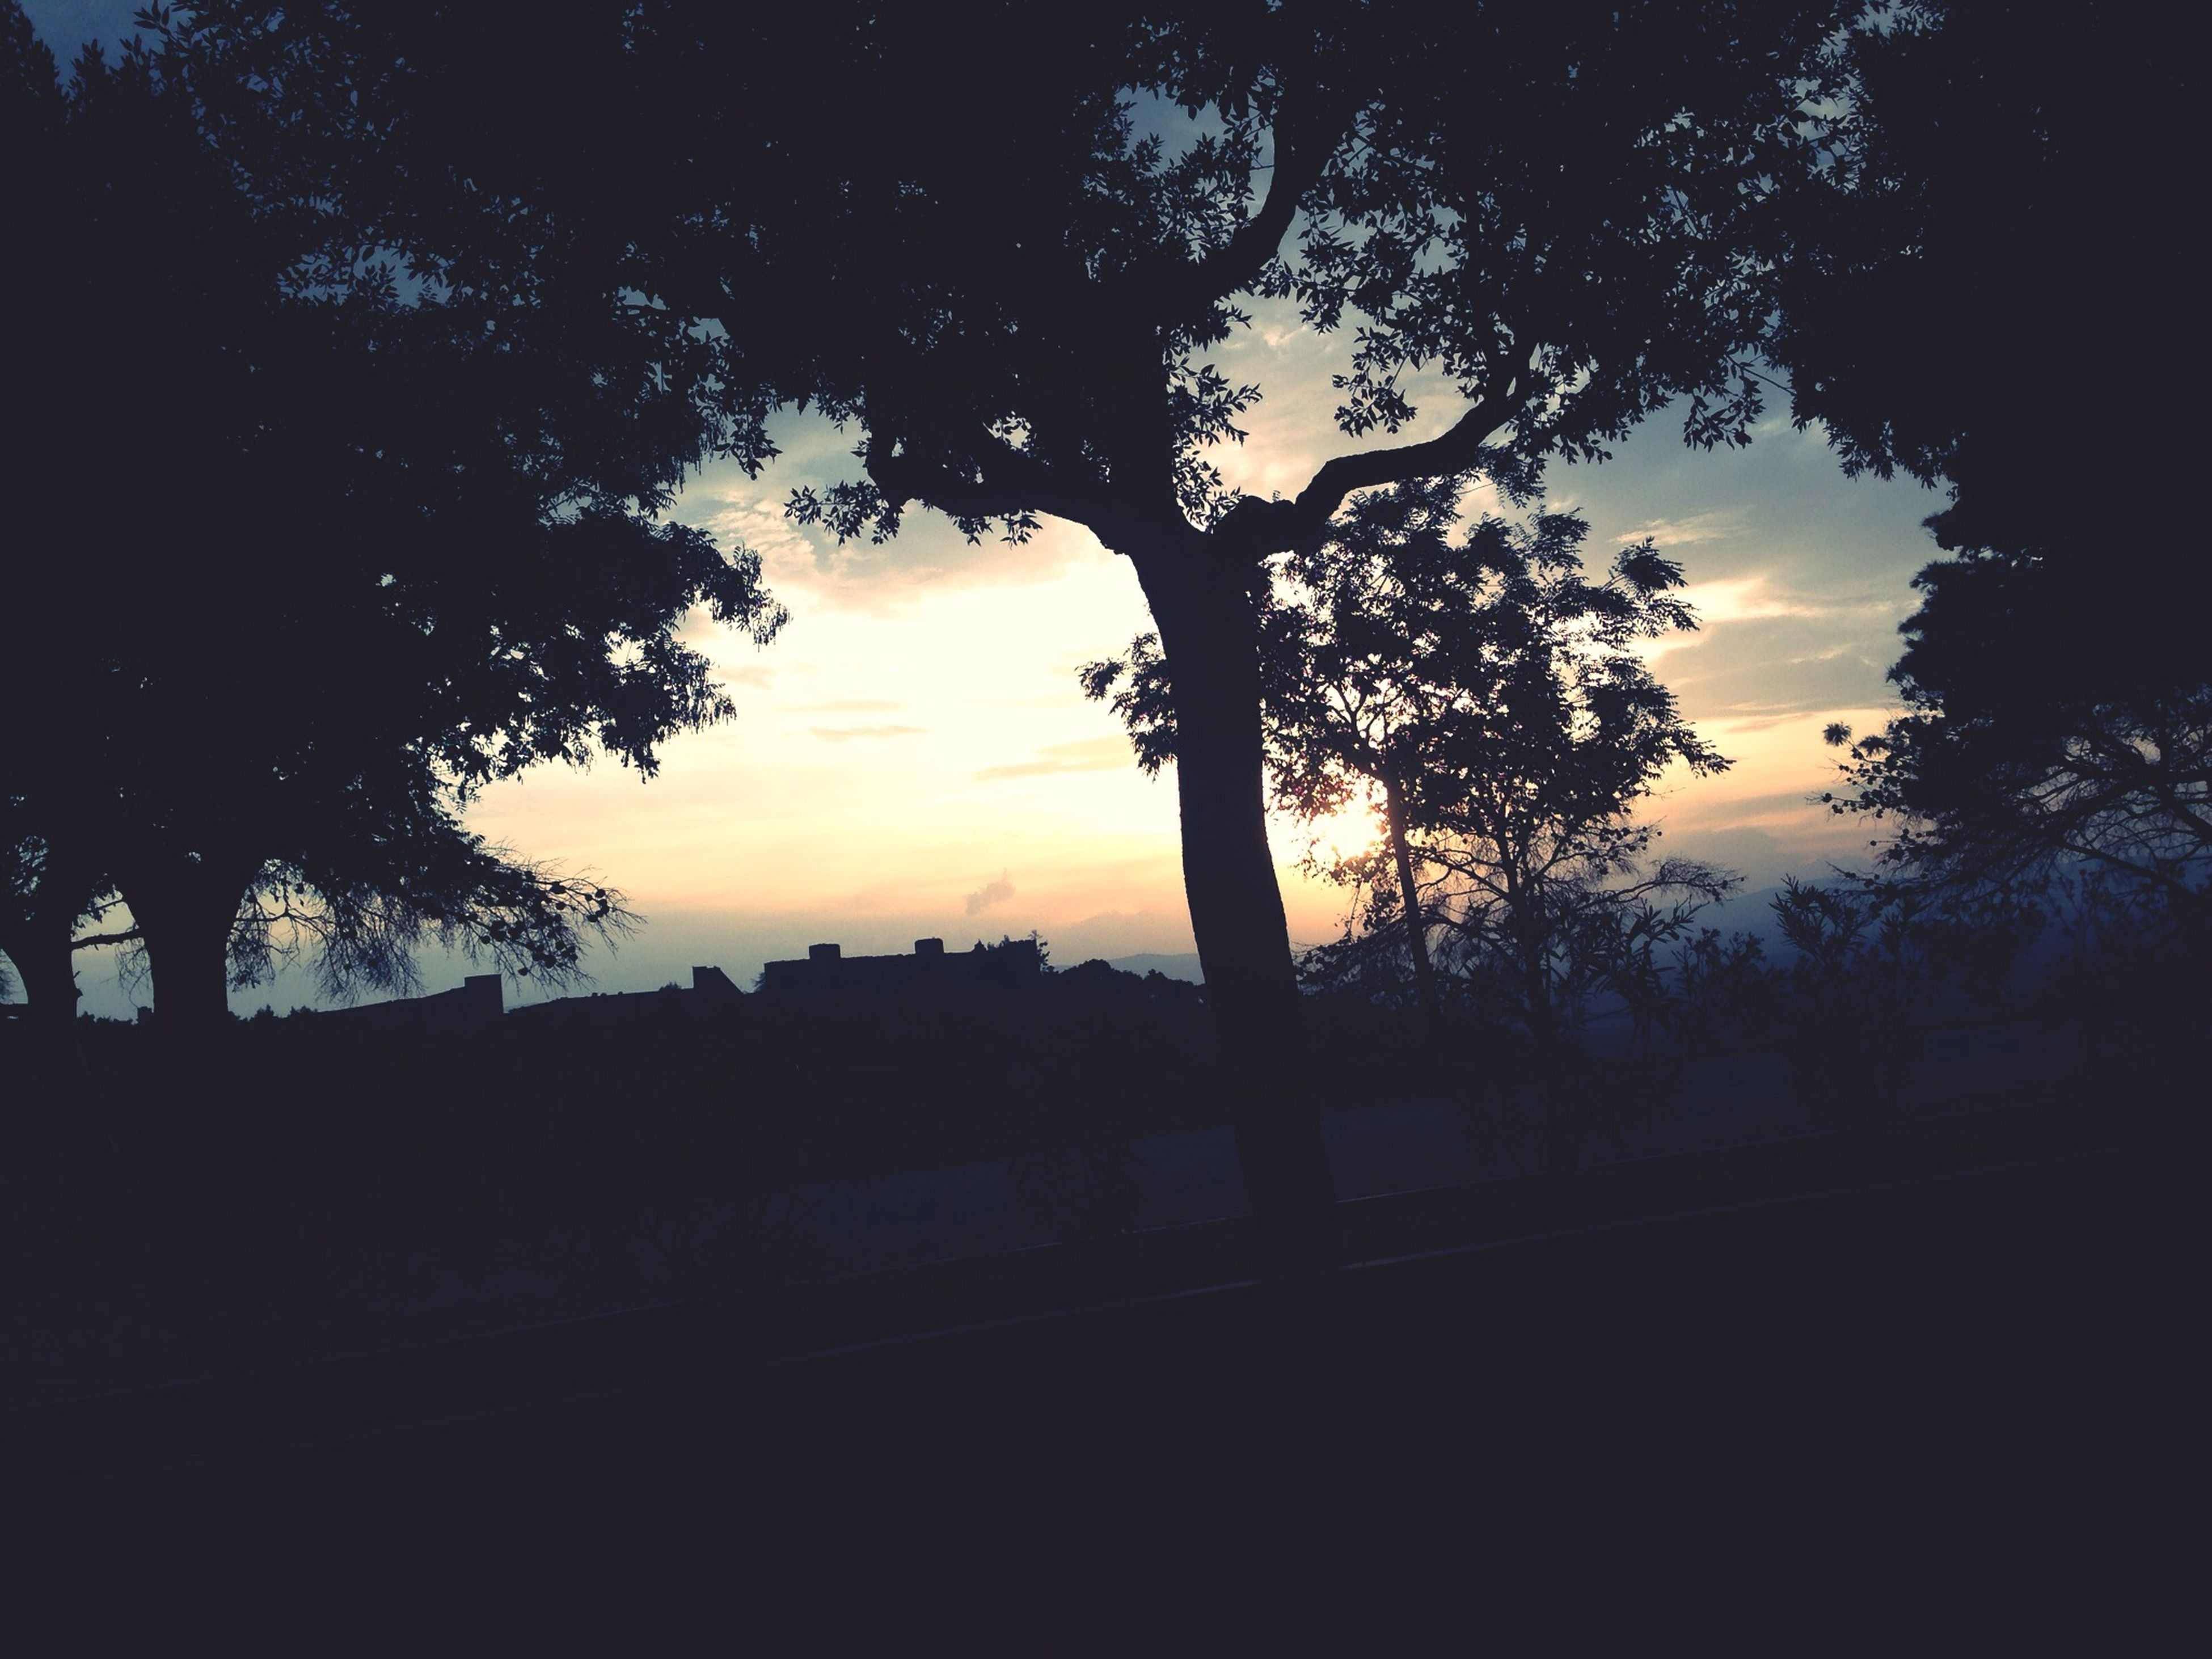 silhouette, sunset, tree, tranquility, sky, tranquil scene, scenics, beauty in nature, nature, dark, outline, idyllic, orange color, landscape, branch, growth, cloud - sky, no people, sun, outdoors